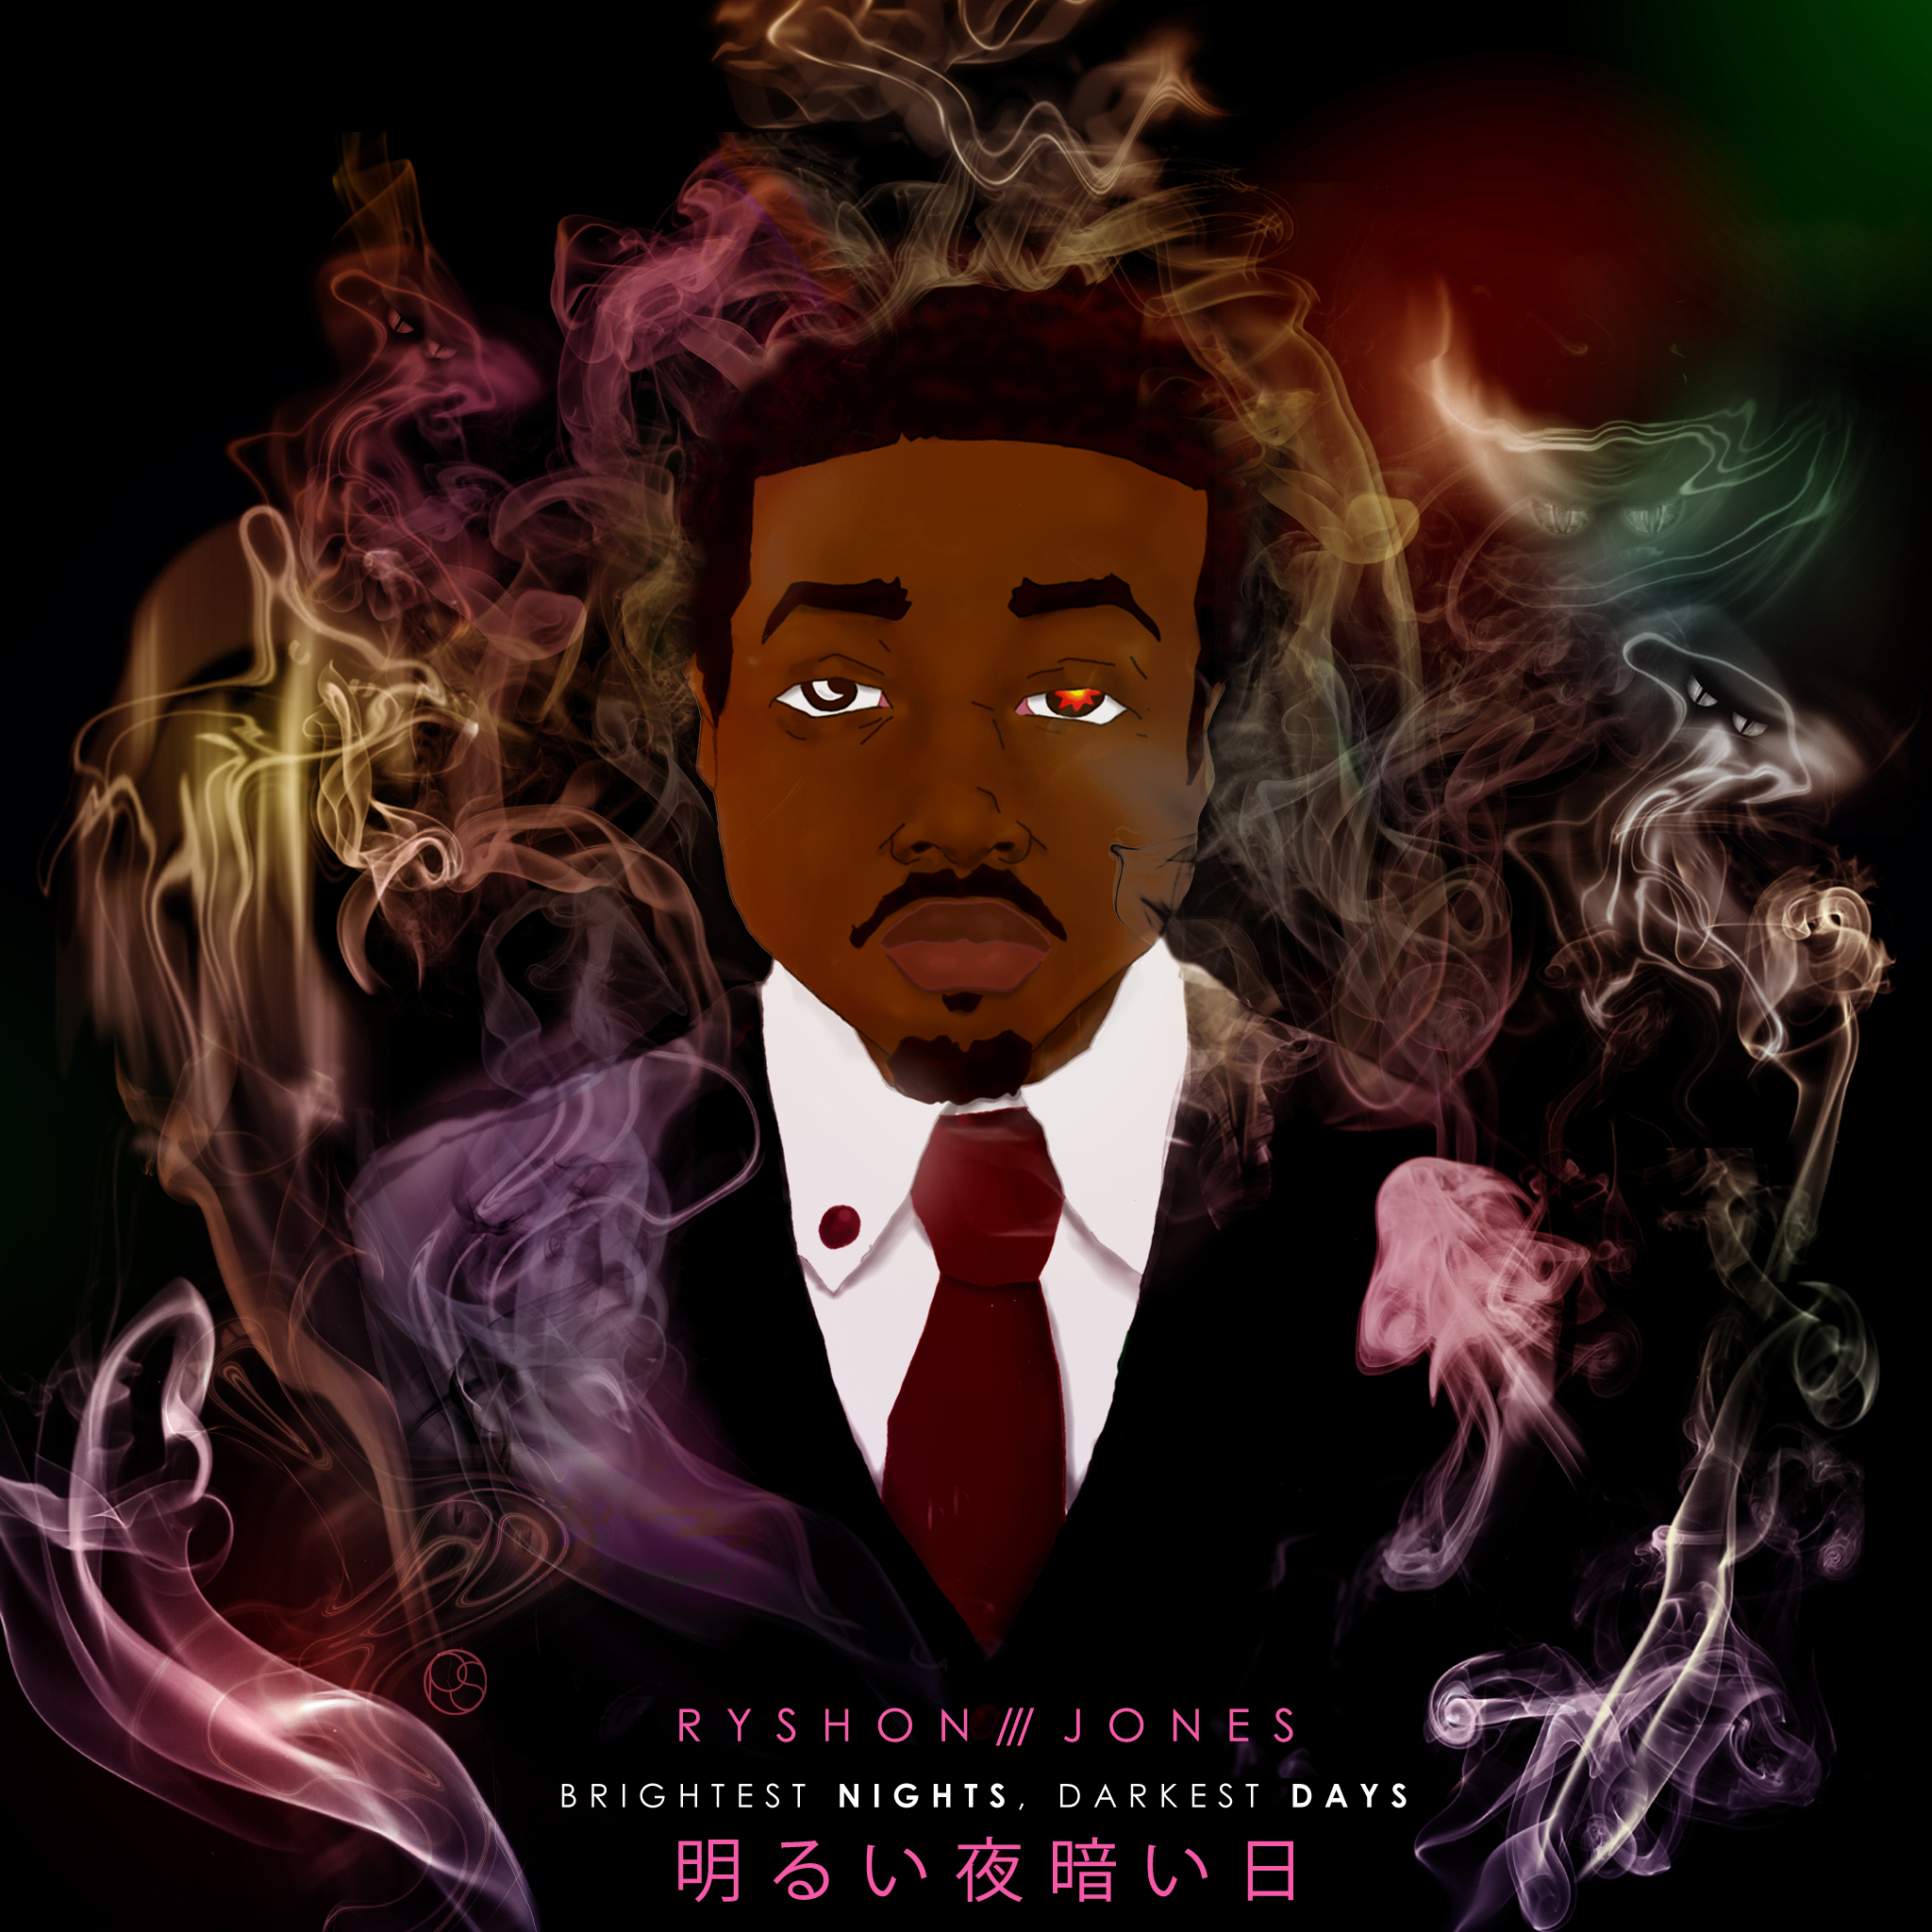 Ryshon Jones (@ryshon215) &#8211; Brightest Nights Darkest Days (Mixtape + Documentary)